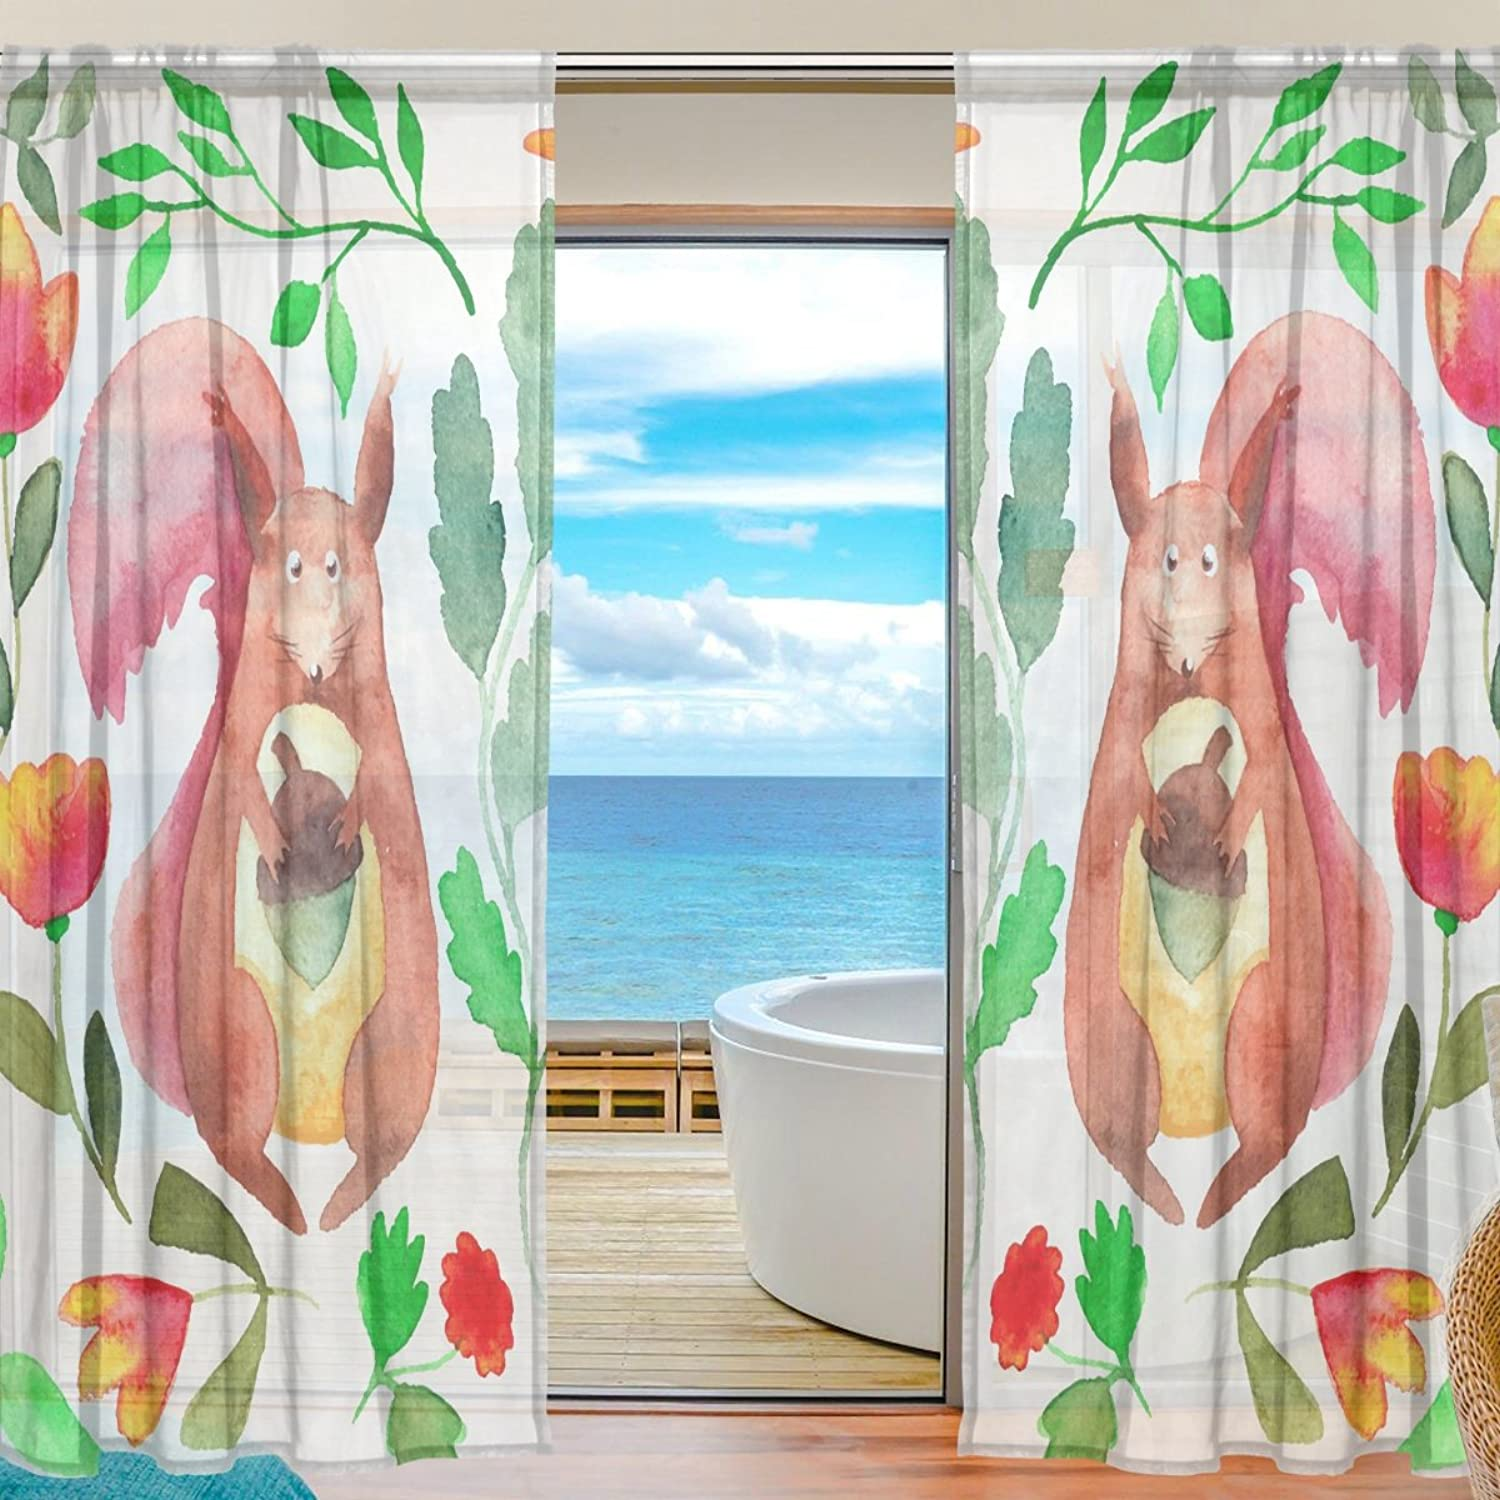 Vantaso Sheer Curtains 78 inch Long Squirrel Floral for Kids Girls Bedroom Living Room Window Decorative 2 Panels